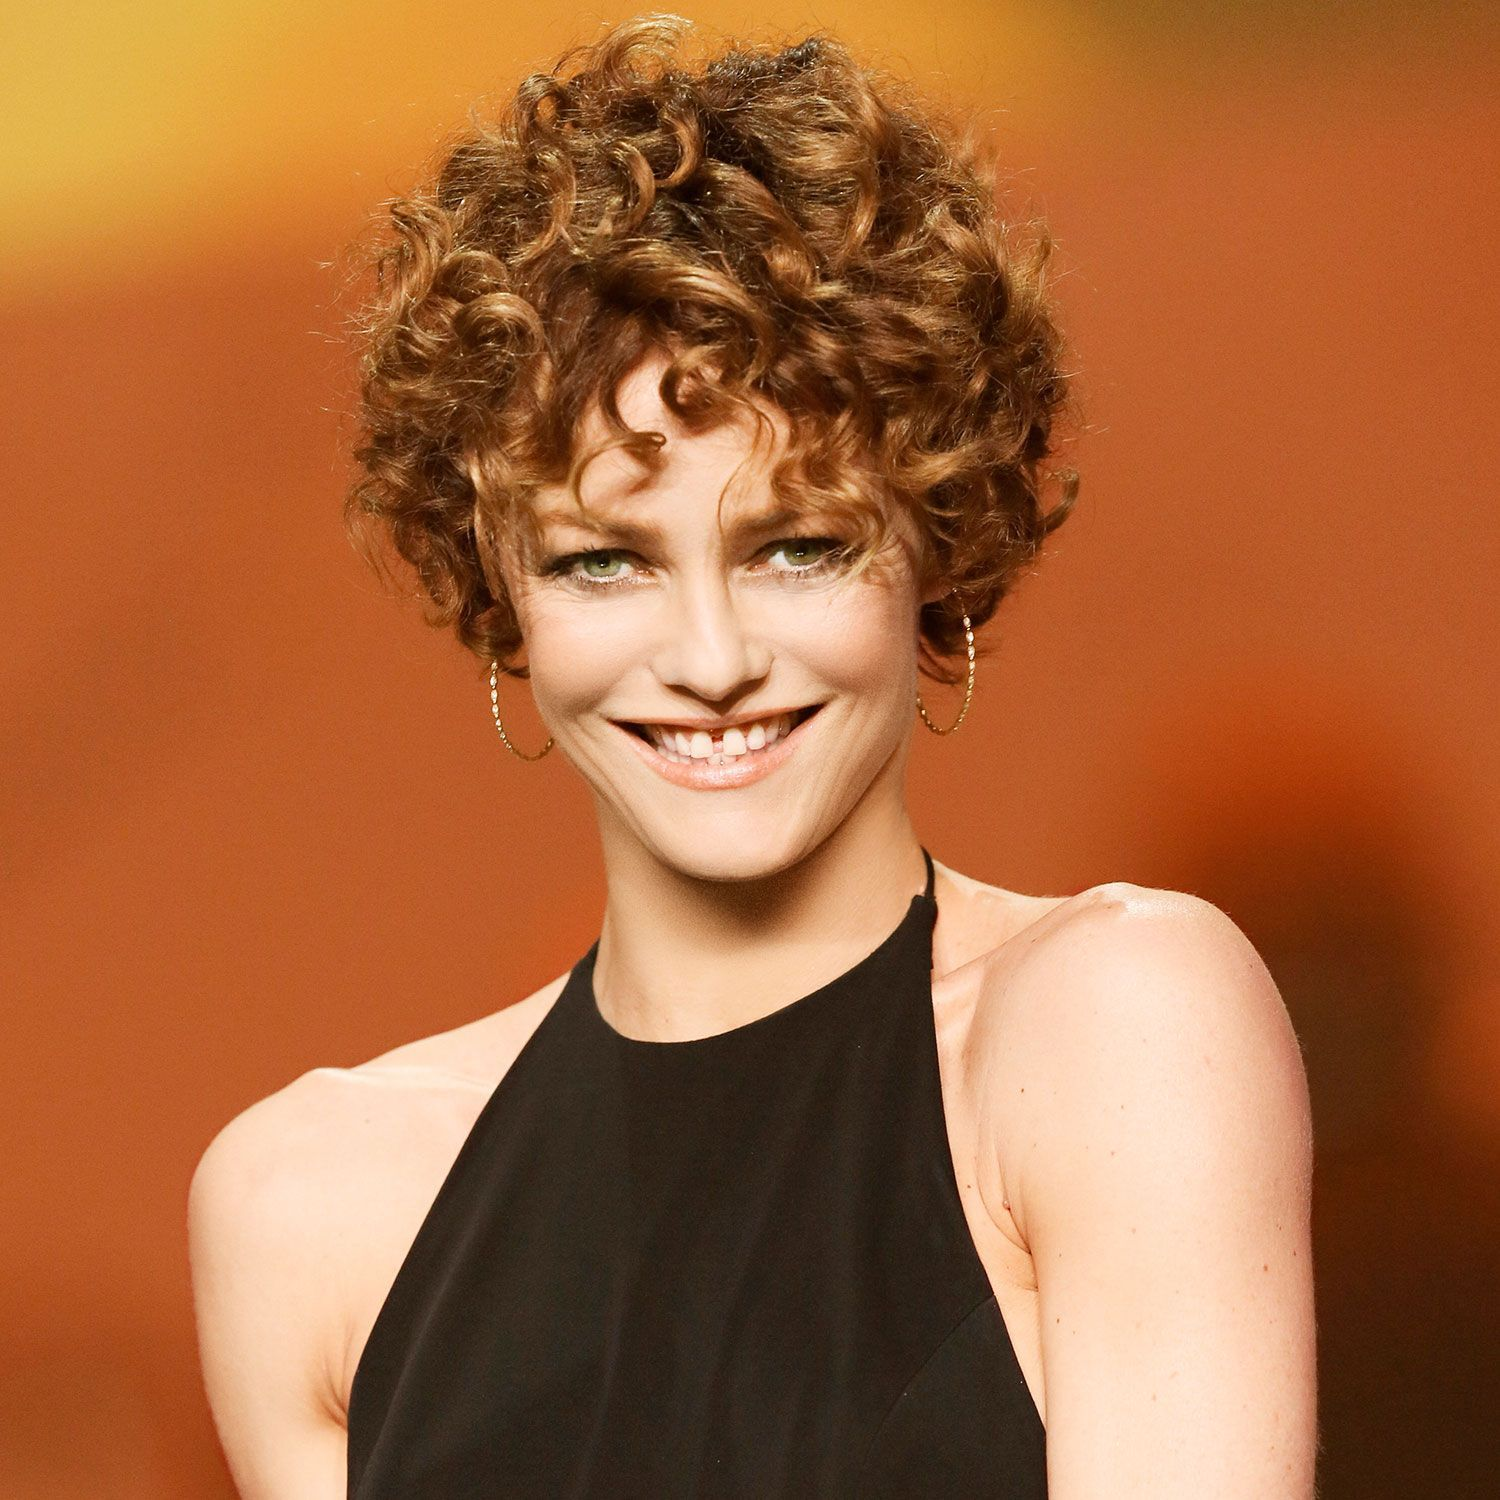 Hairstyles For Short Curly Hair Older Women Google Search Womens Hairstyles Short Curly Hairstyles For Women Hair Styles